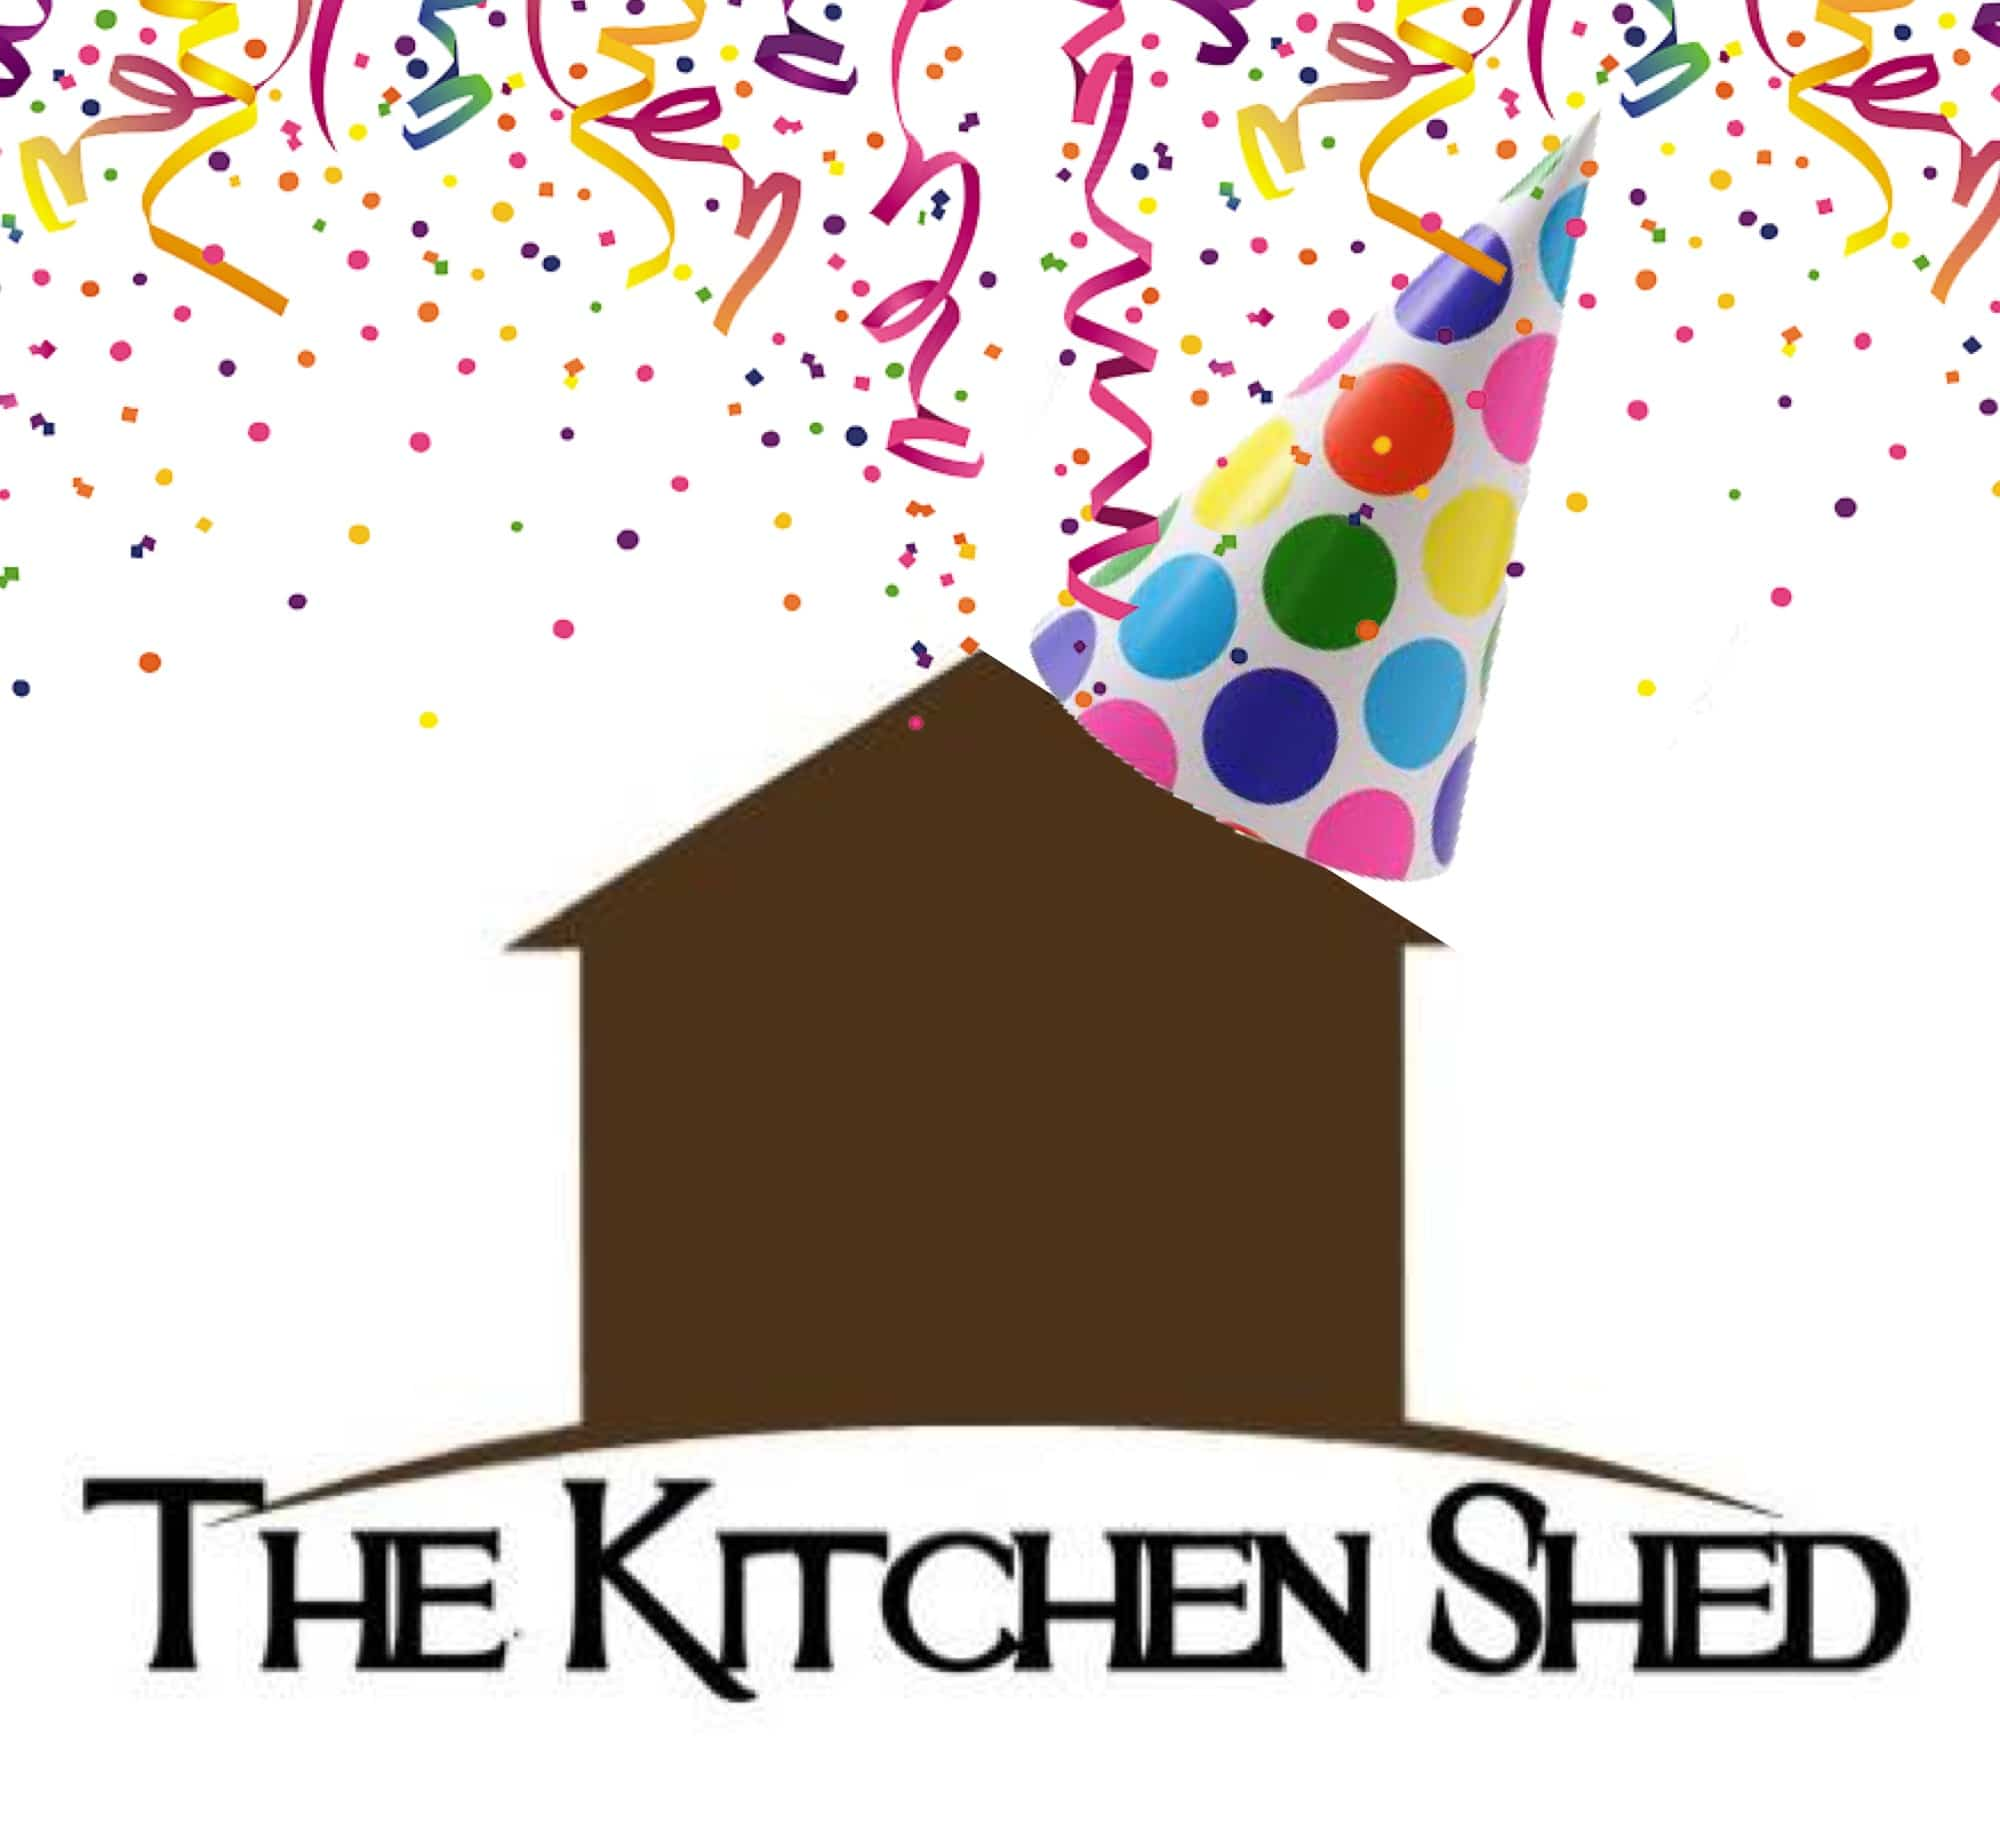 Happy 1st Birthday The Kitchen Shed